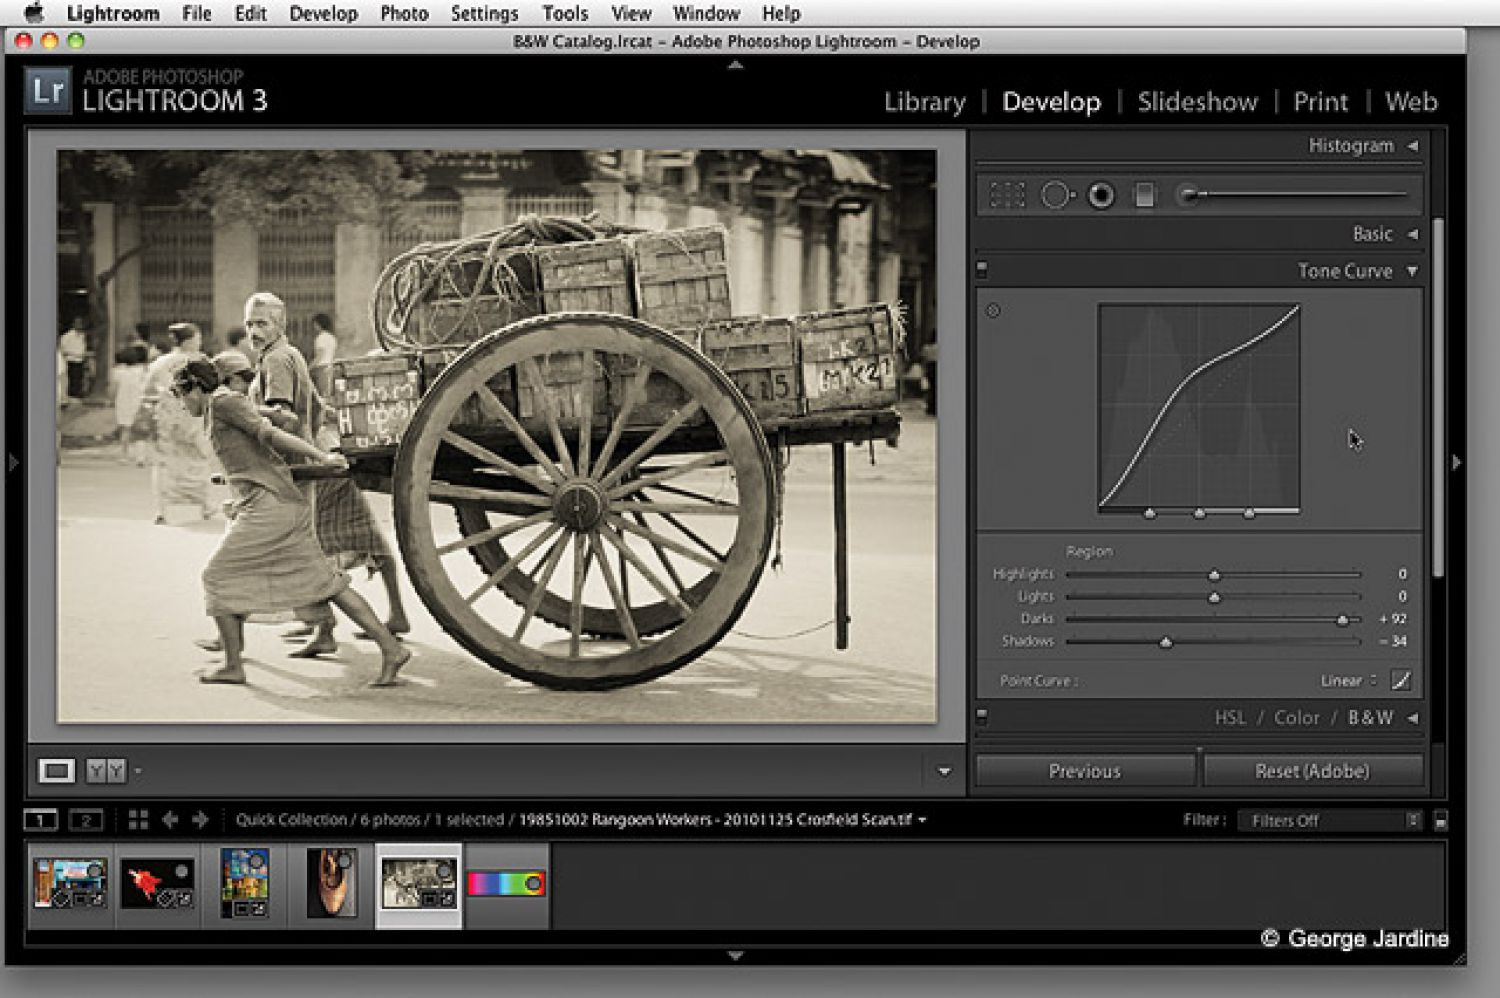 There are plenty of one-click solutions for black-and-white conversions, but many photographers will prefer to use software that gives more control. Above: In Lightroom, you can see the Tone Curve and sliders that you have at your disposal when analyzing the color image and for fine-tuning the black-and-white image.